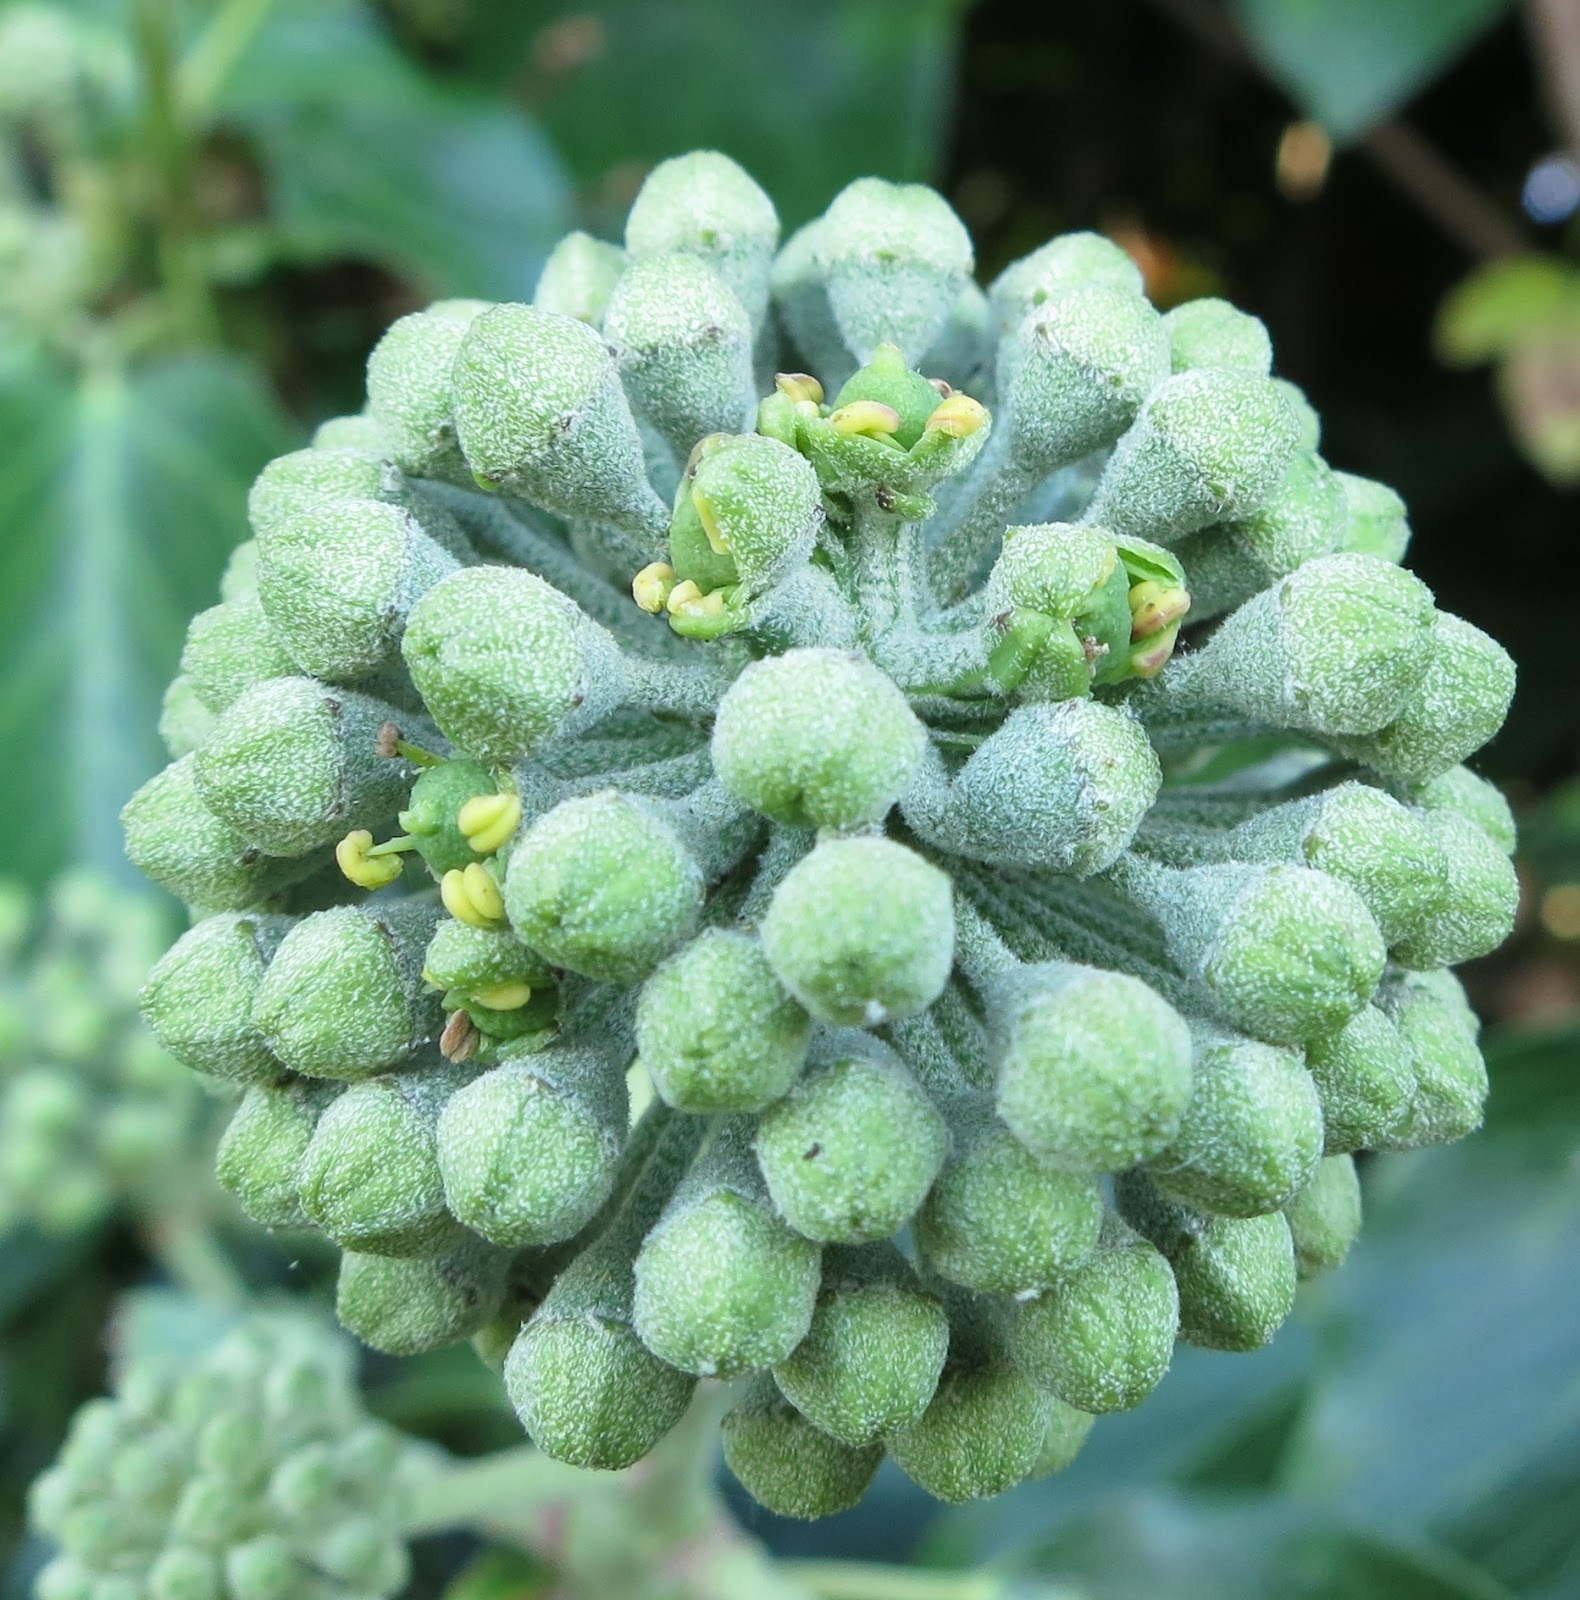 Close up of ivy flowers in ball - showing emerging anthers